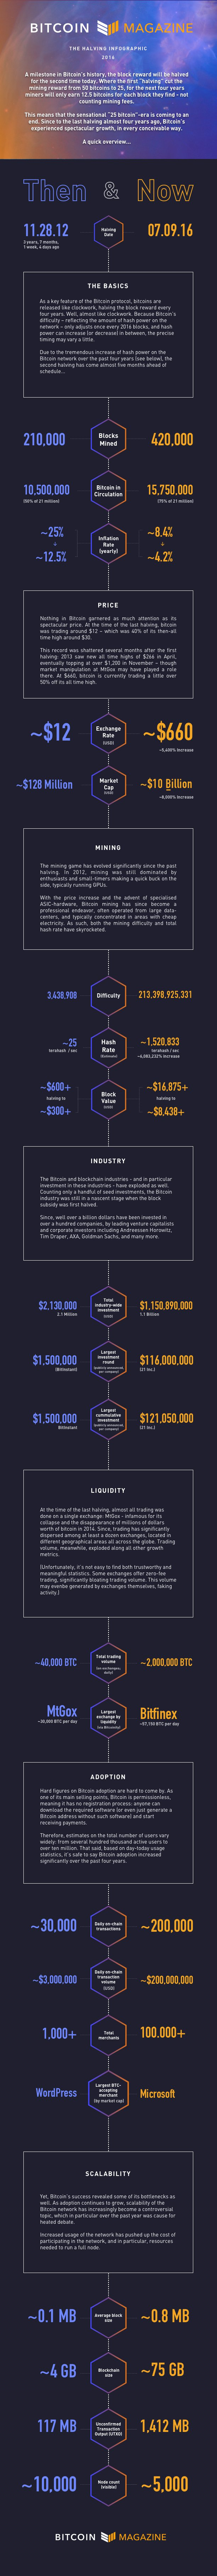 Then and Now: Key Bitcoin Stats and Figures